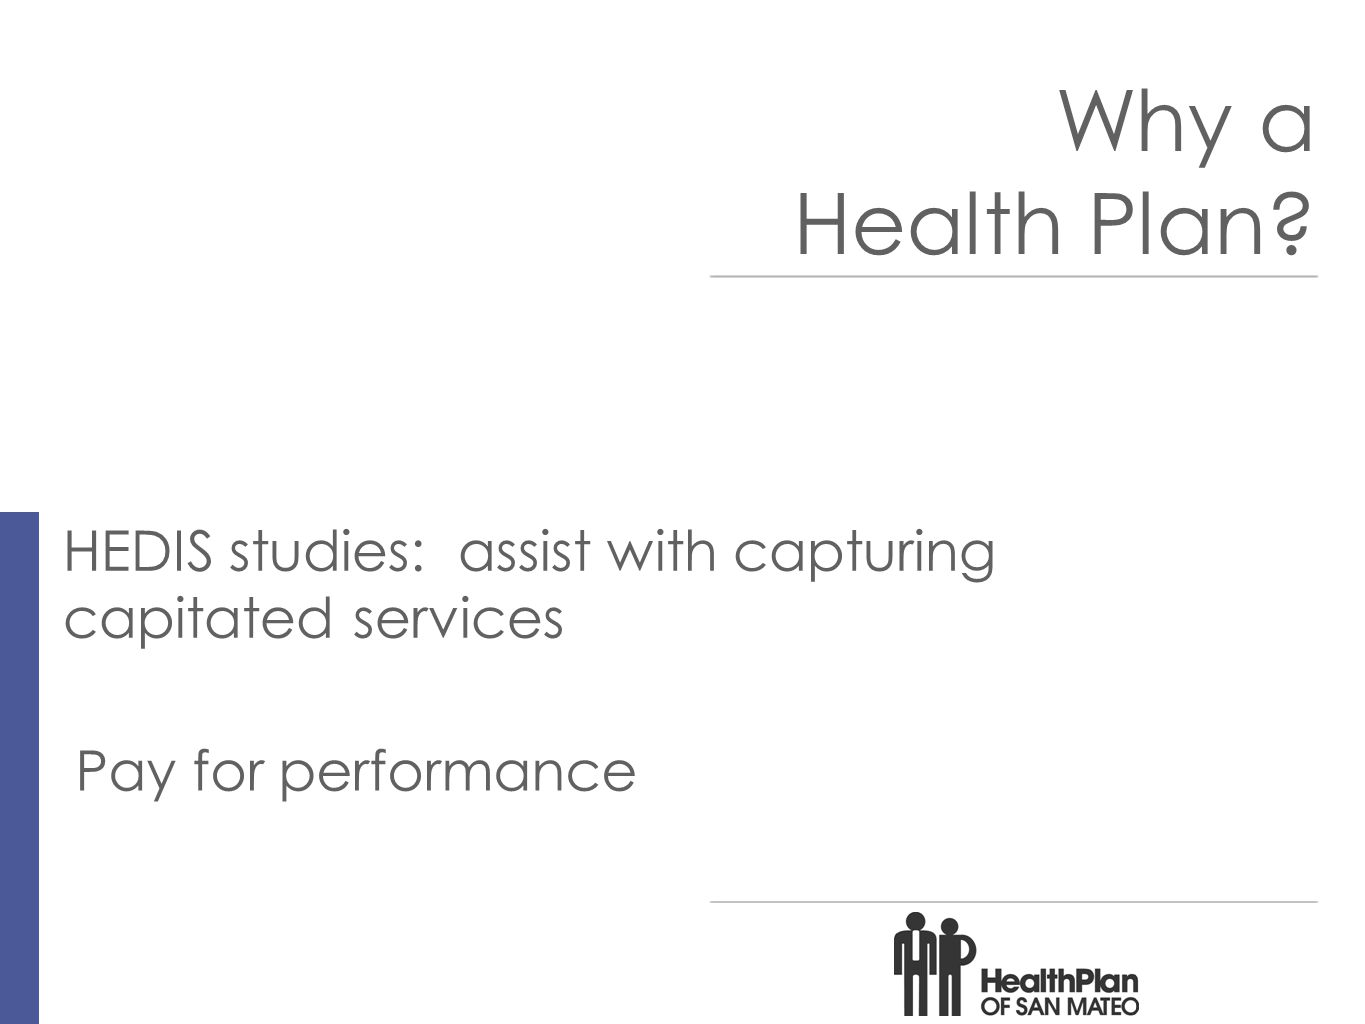 10 Why a Health Plan HEDIS studies: assist with capturing capitated services Pay for performance